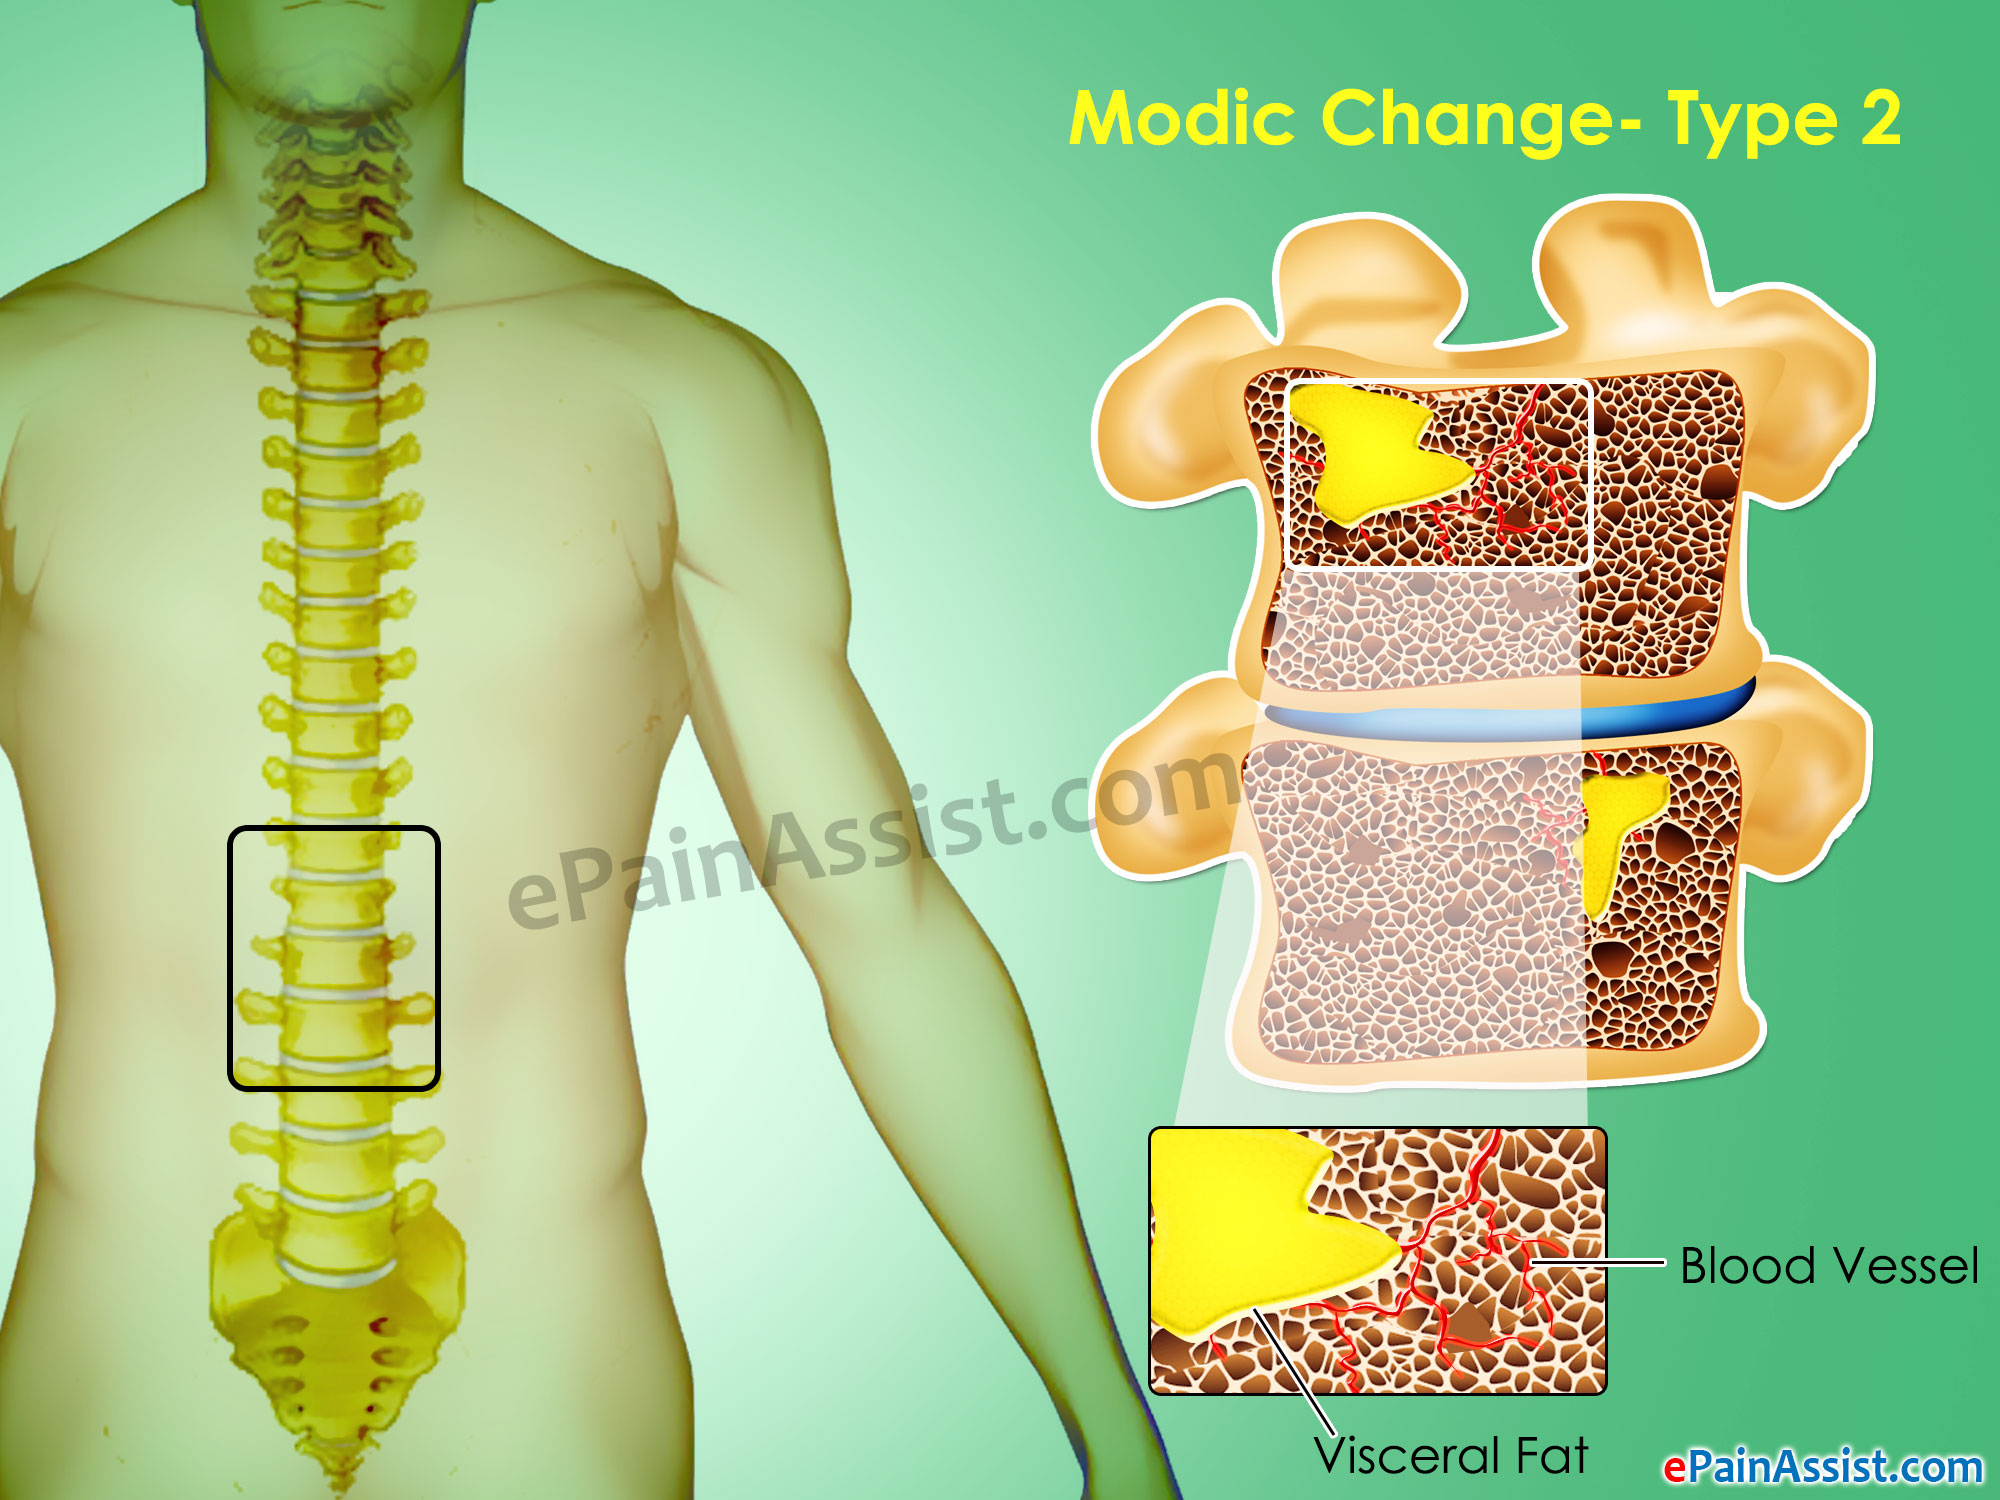 Modic Changes Type 2